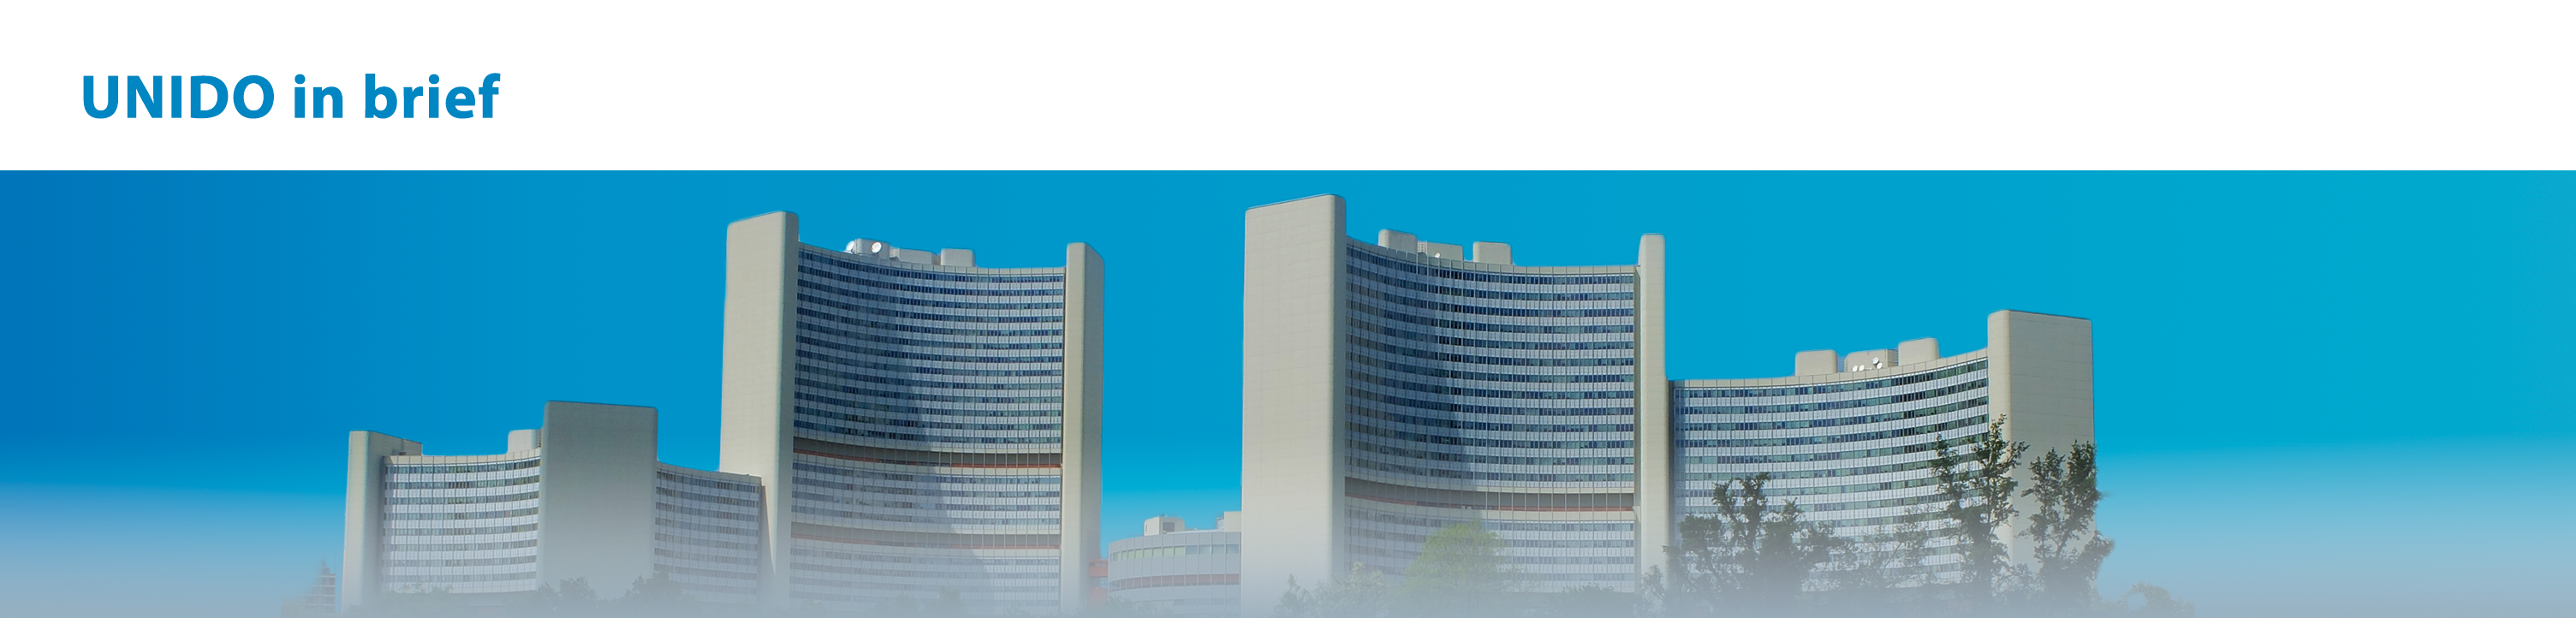 Unido in brief unido unido is the specialized agency of the united nations that promotes industrial development for poverty reduction inclusive globalization and environmental biocorpaavc